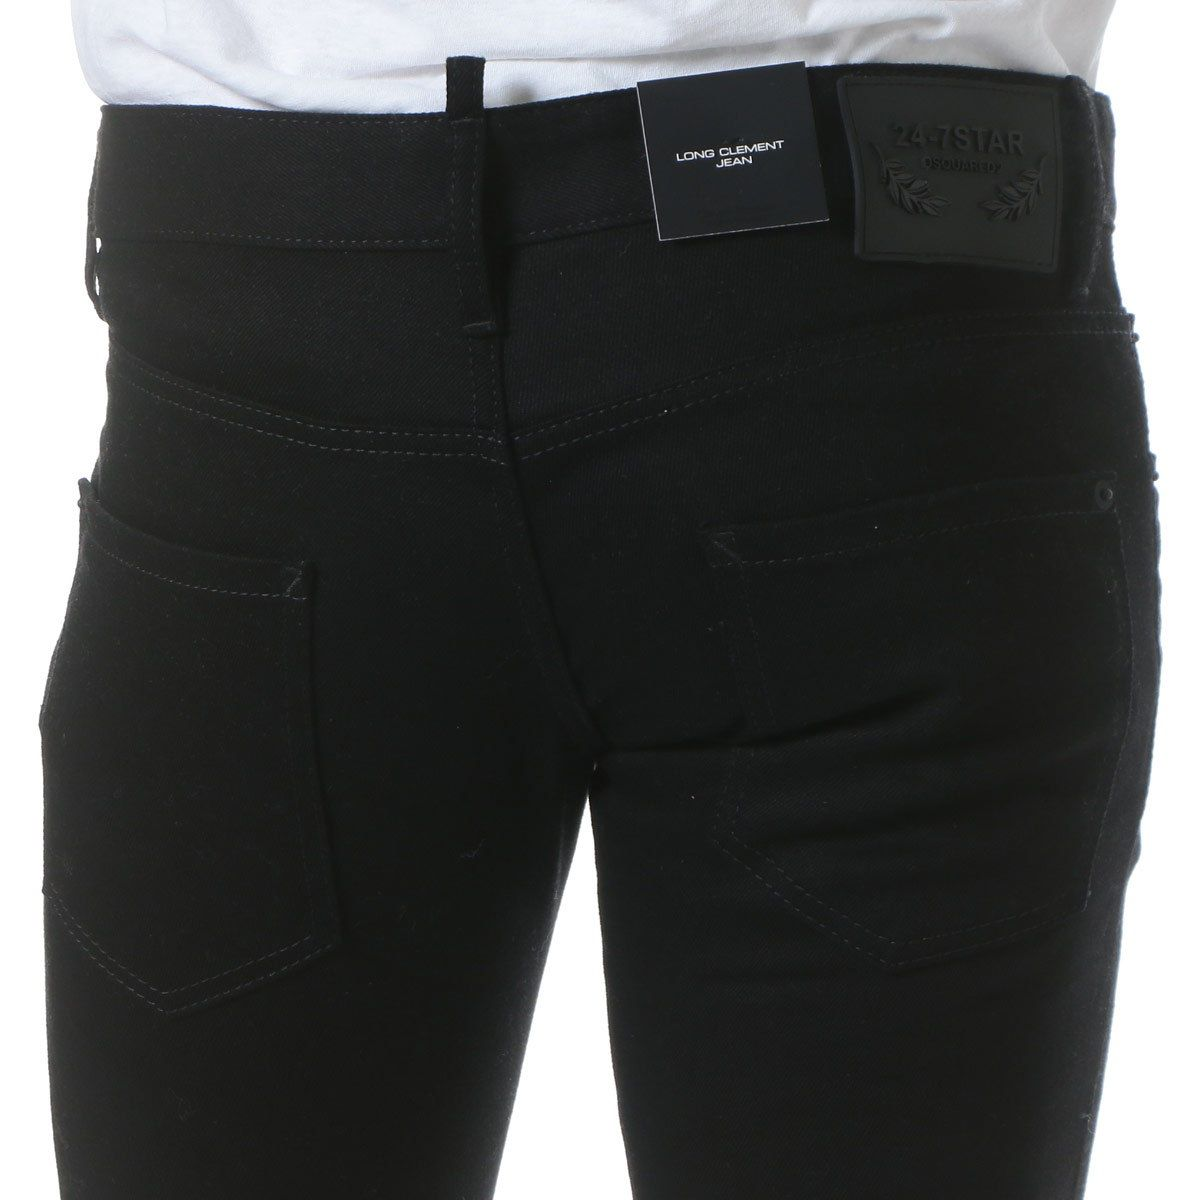 DSQUARED2 (ディースクエアード) 無地 5P ボタンフライ ジーンズ LONG CLEMENT JEAN 【D2LB0219S30564】